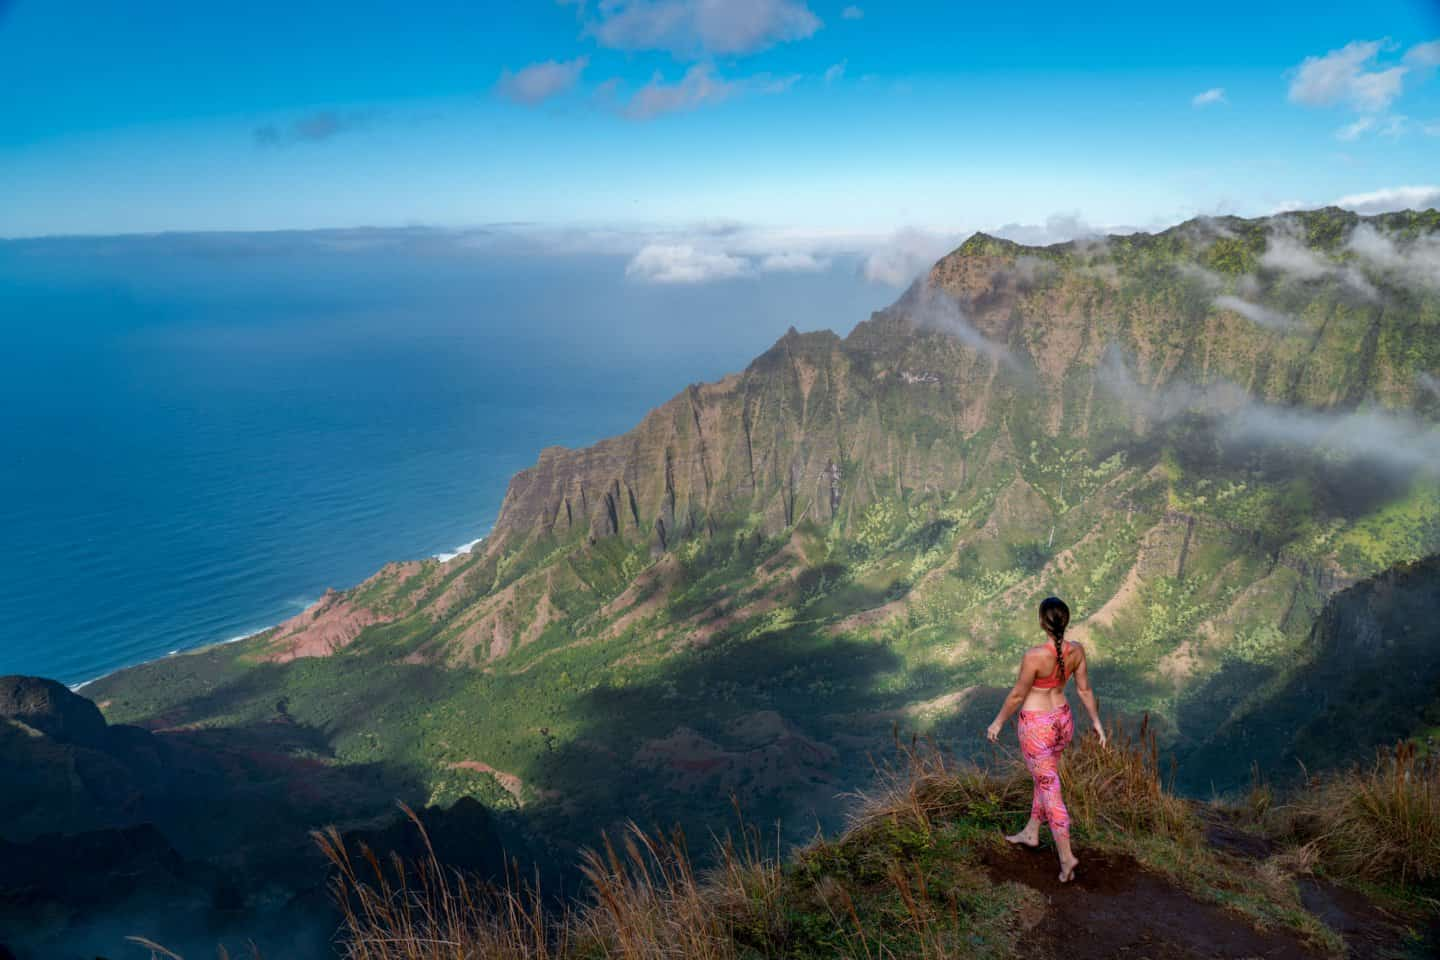 Taking in the beauty of the Kalalau Valley from Kalepa Ridge.